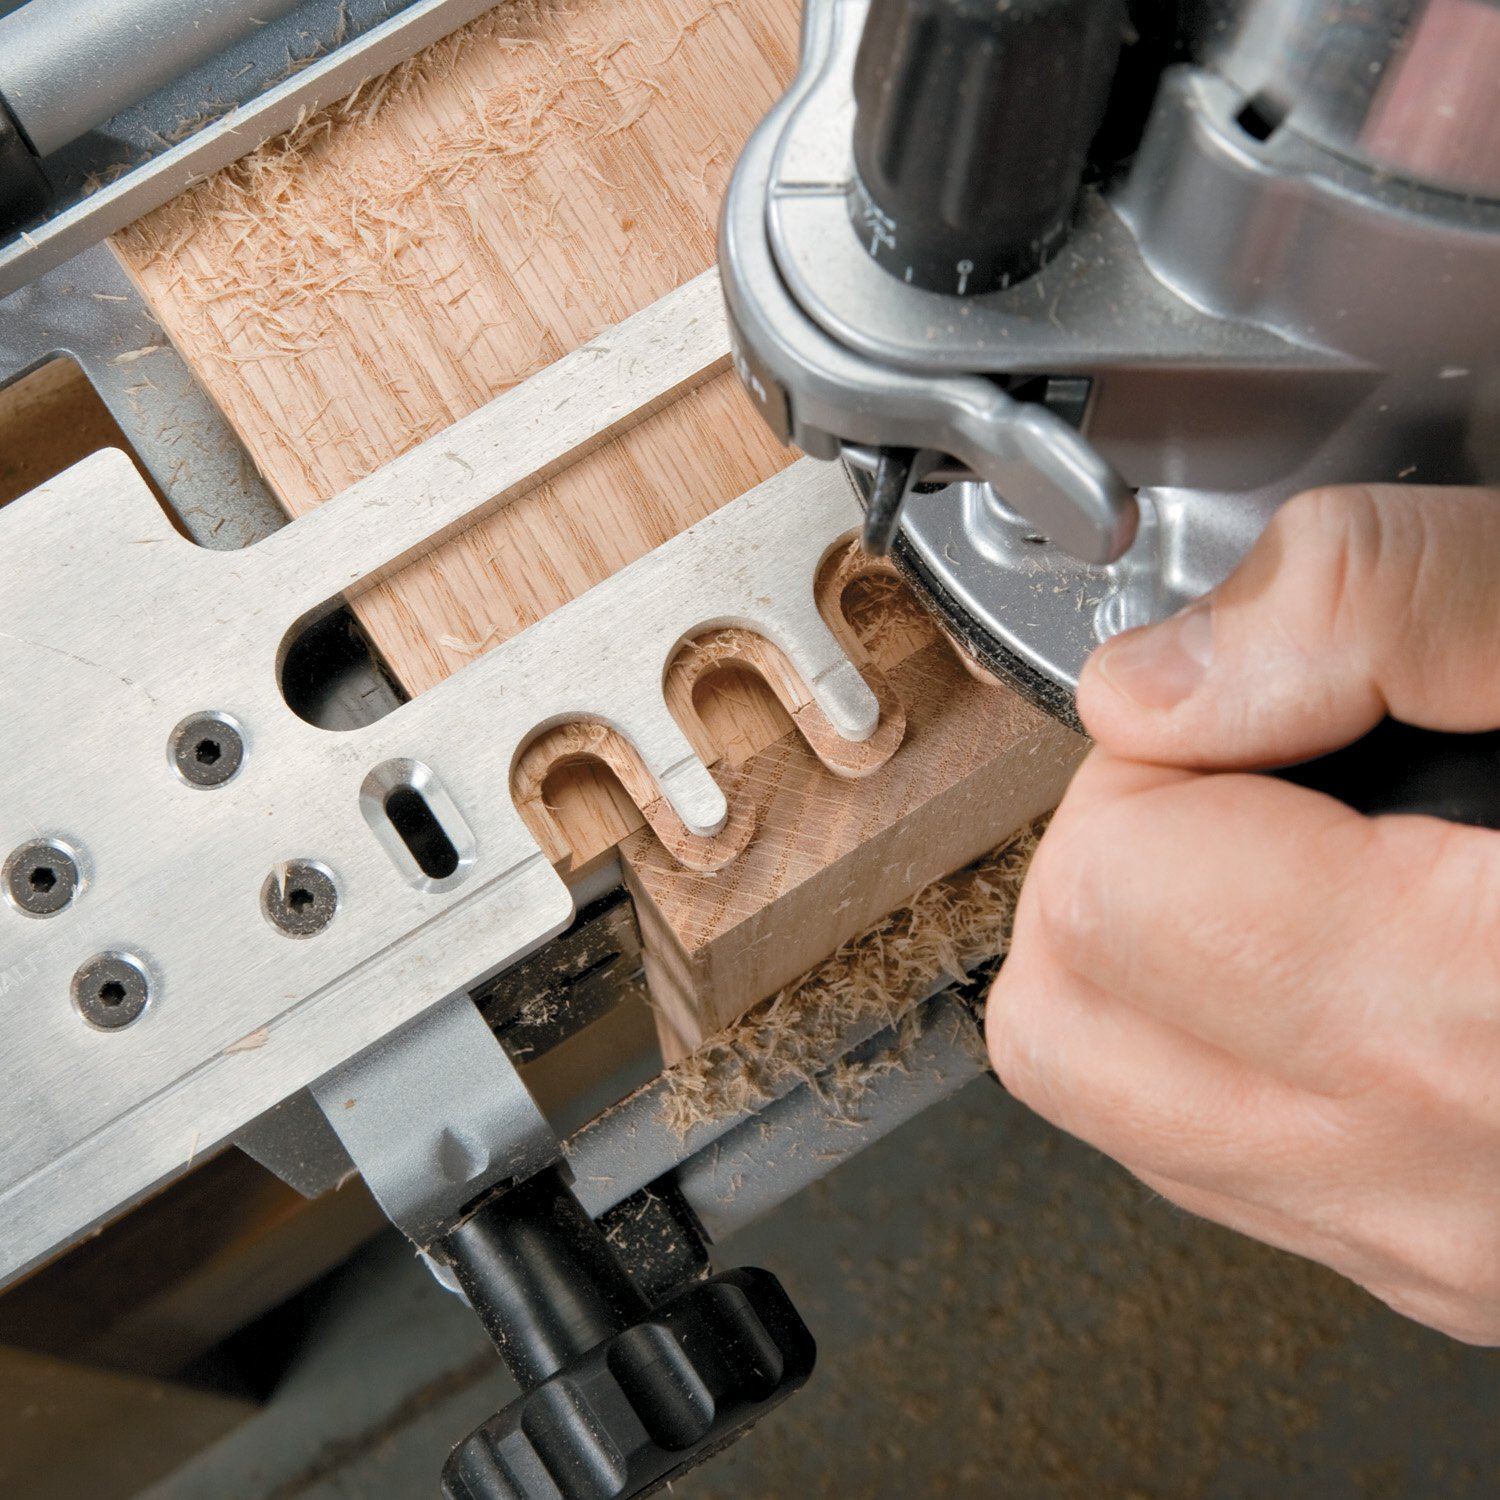 PORTER-CABLE 4210 12-Inch Dovetail Jig - Router Templates - Amazon.com